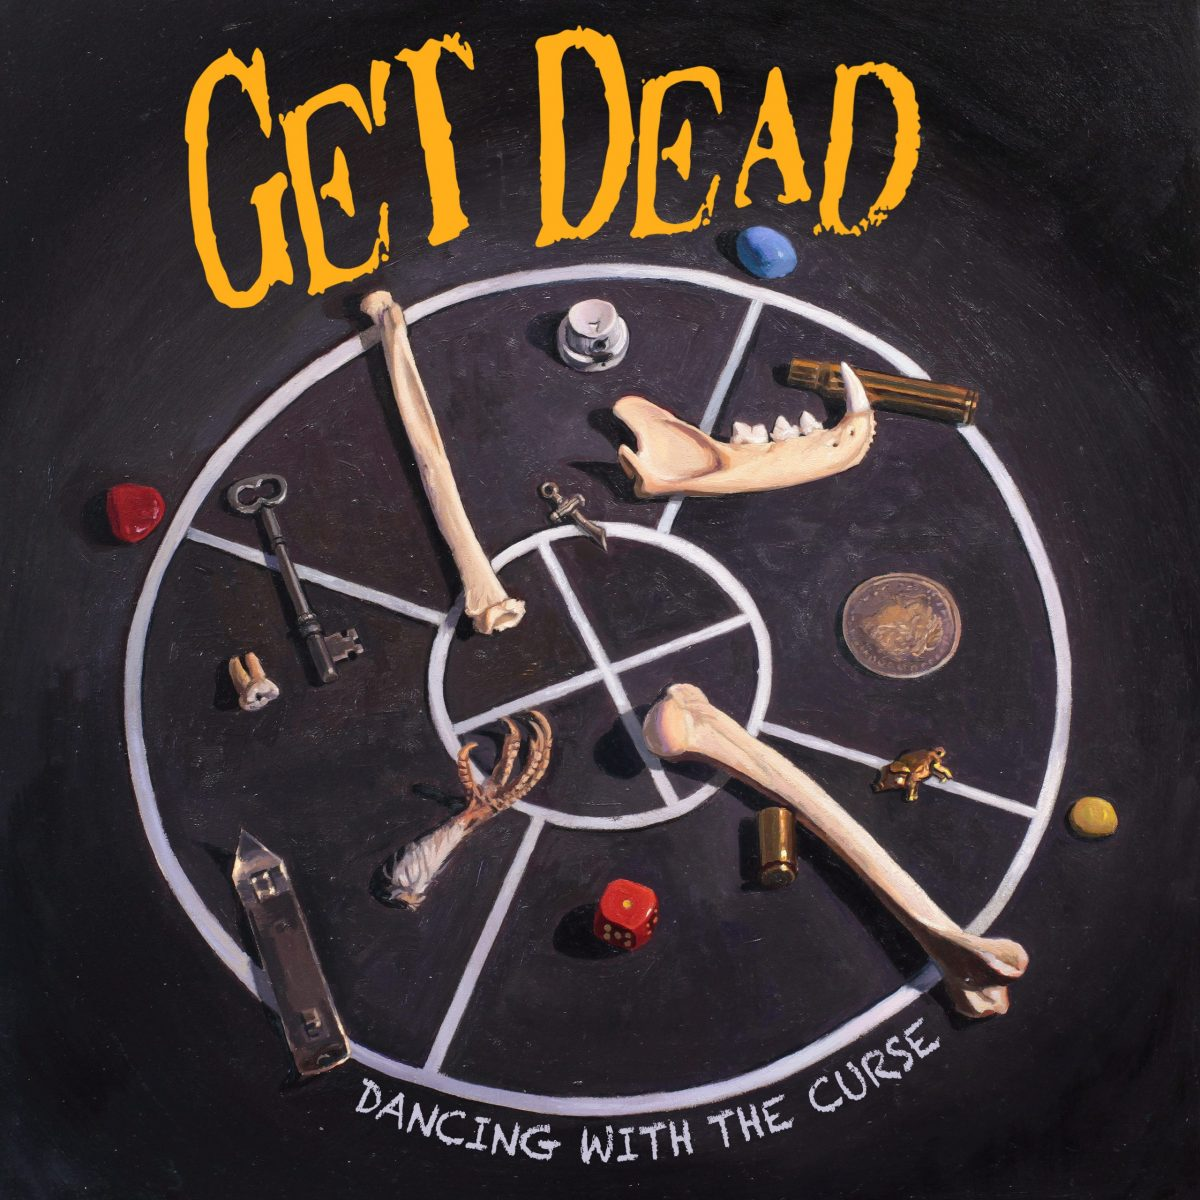 get-dead-dancing-with-the-curse-album-review